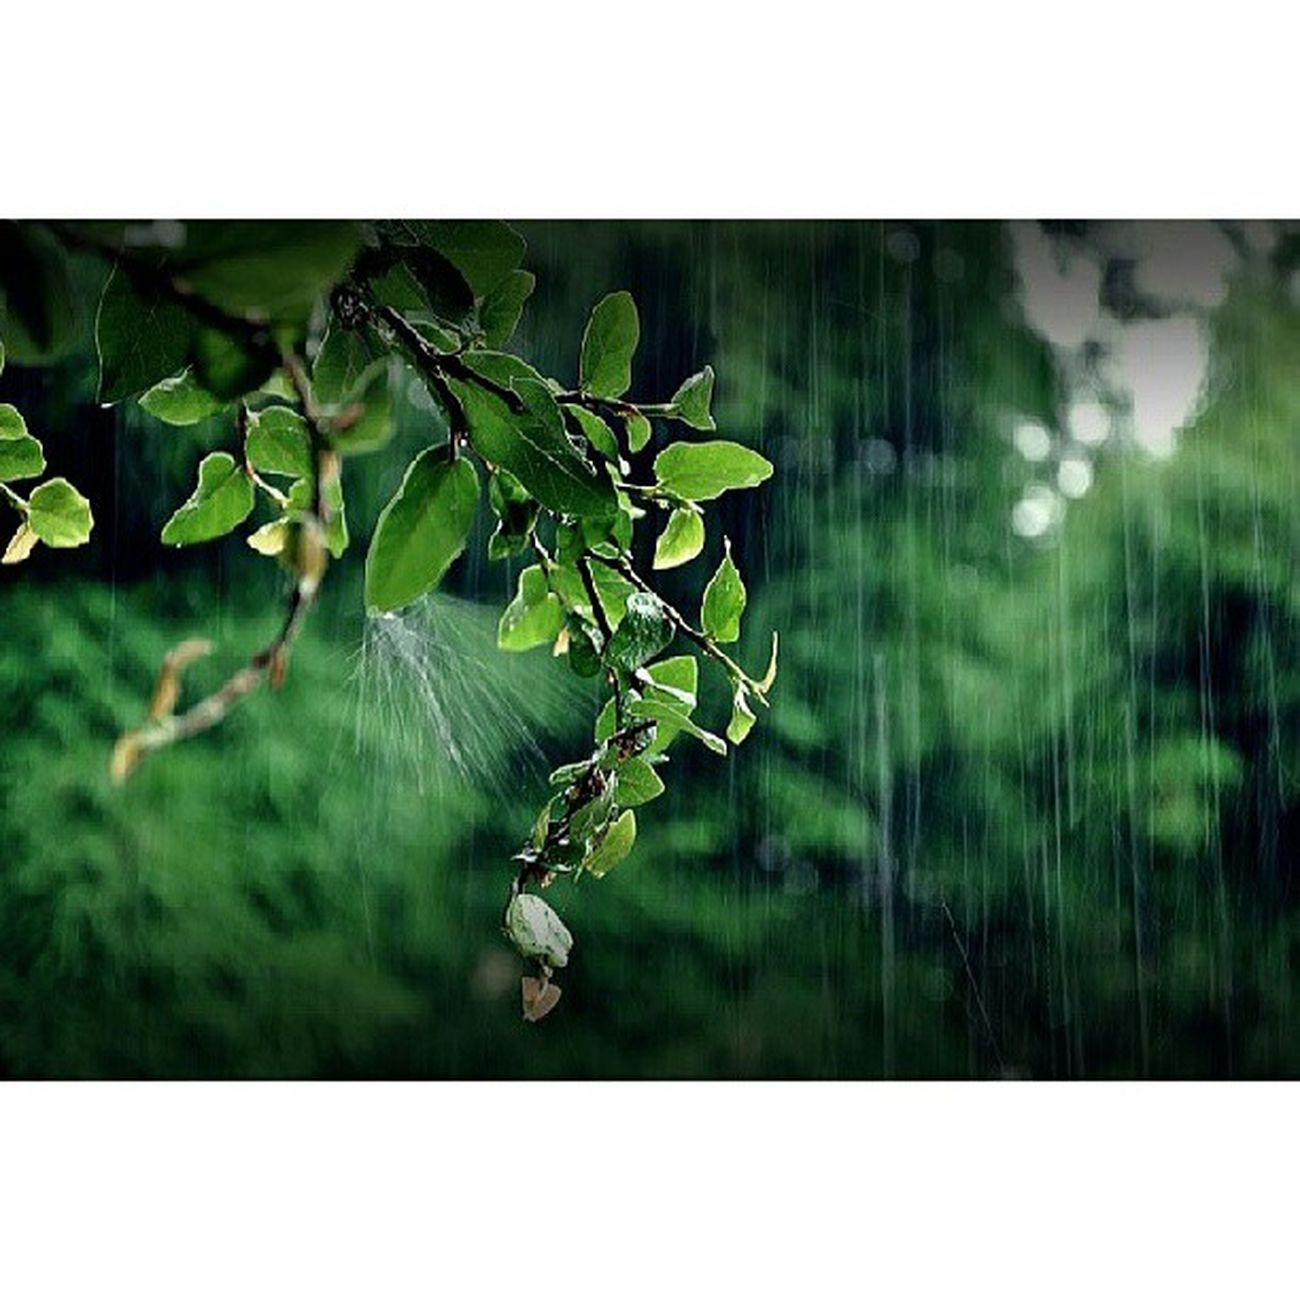 The first spell of rain always amaze Raindrops Rain Leafs FirstDrop Mardan KP KhyberPakhtoonkhawa Pakistan Amazing